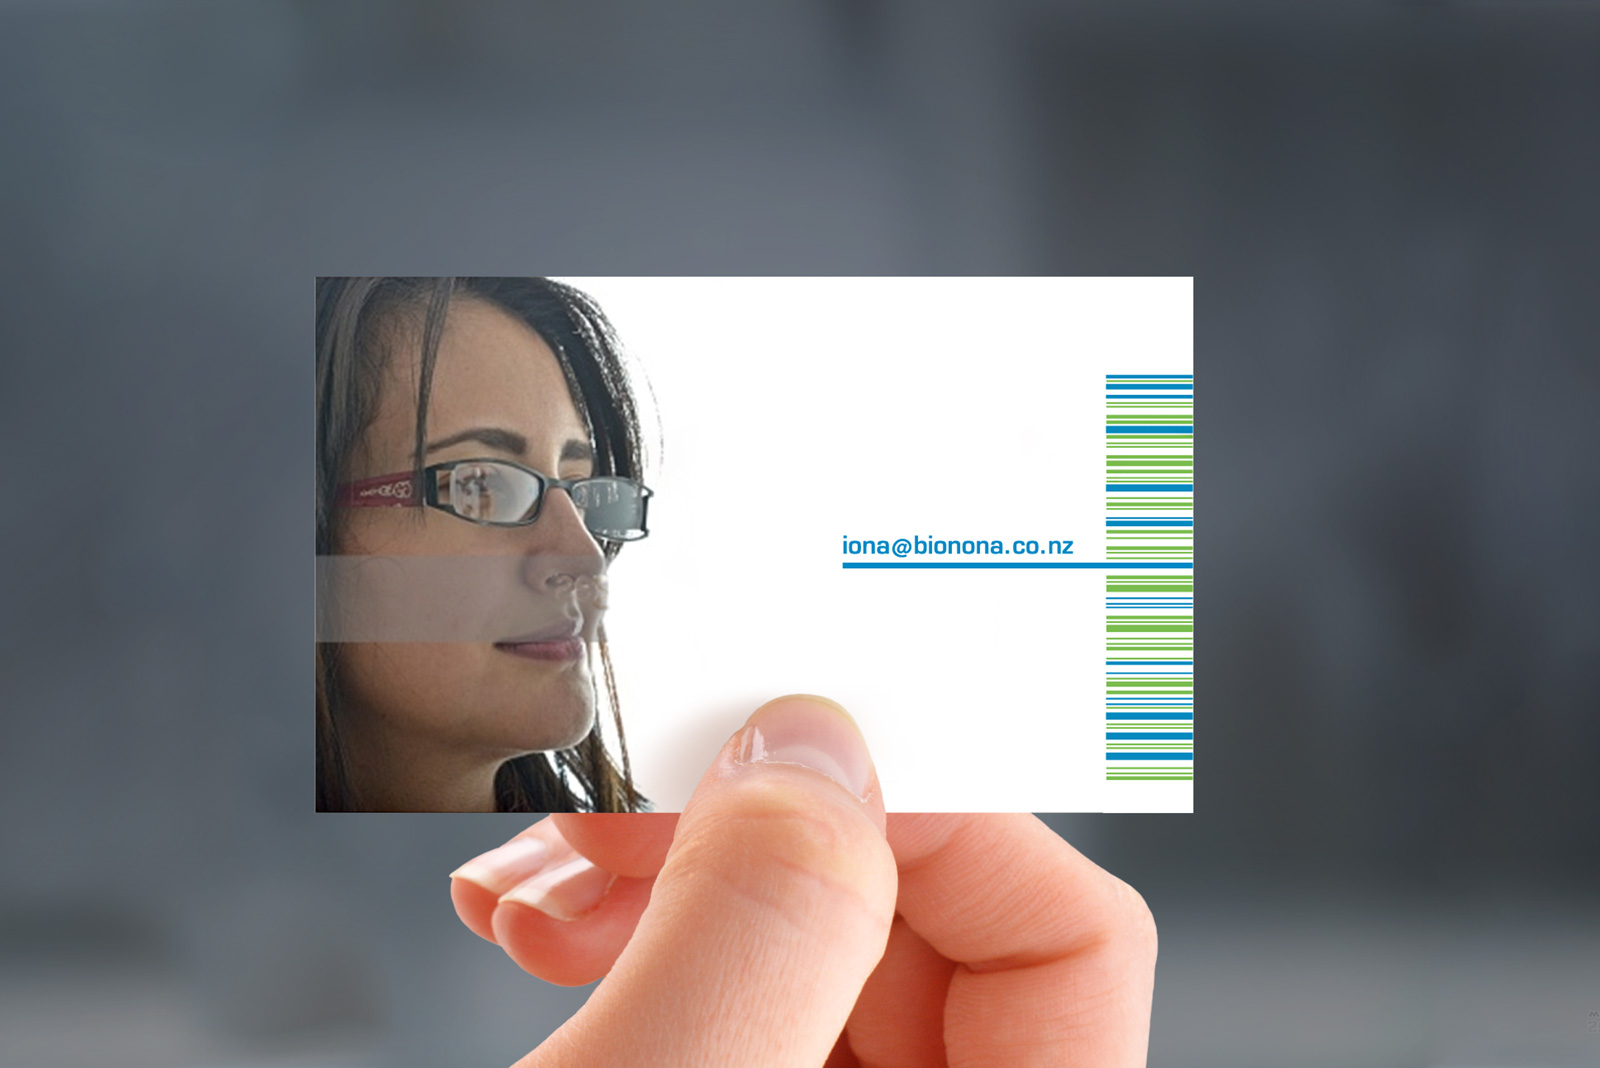 Hand-held photorealistic mockup of back of Bionona business card, printed in 3 colours, litho offset